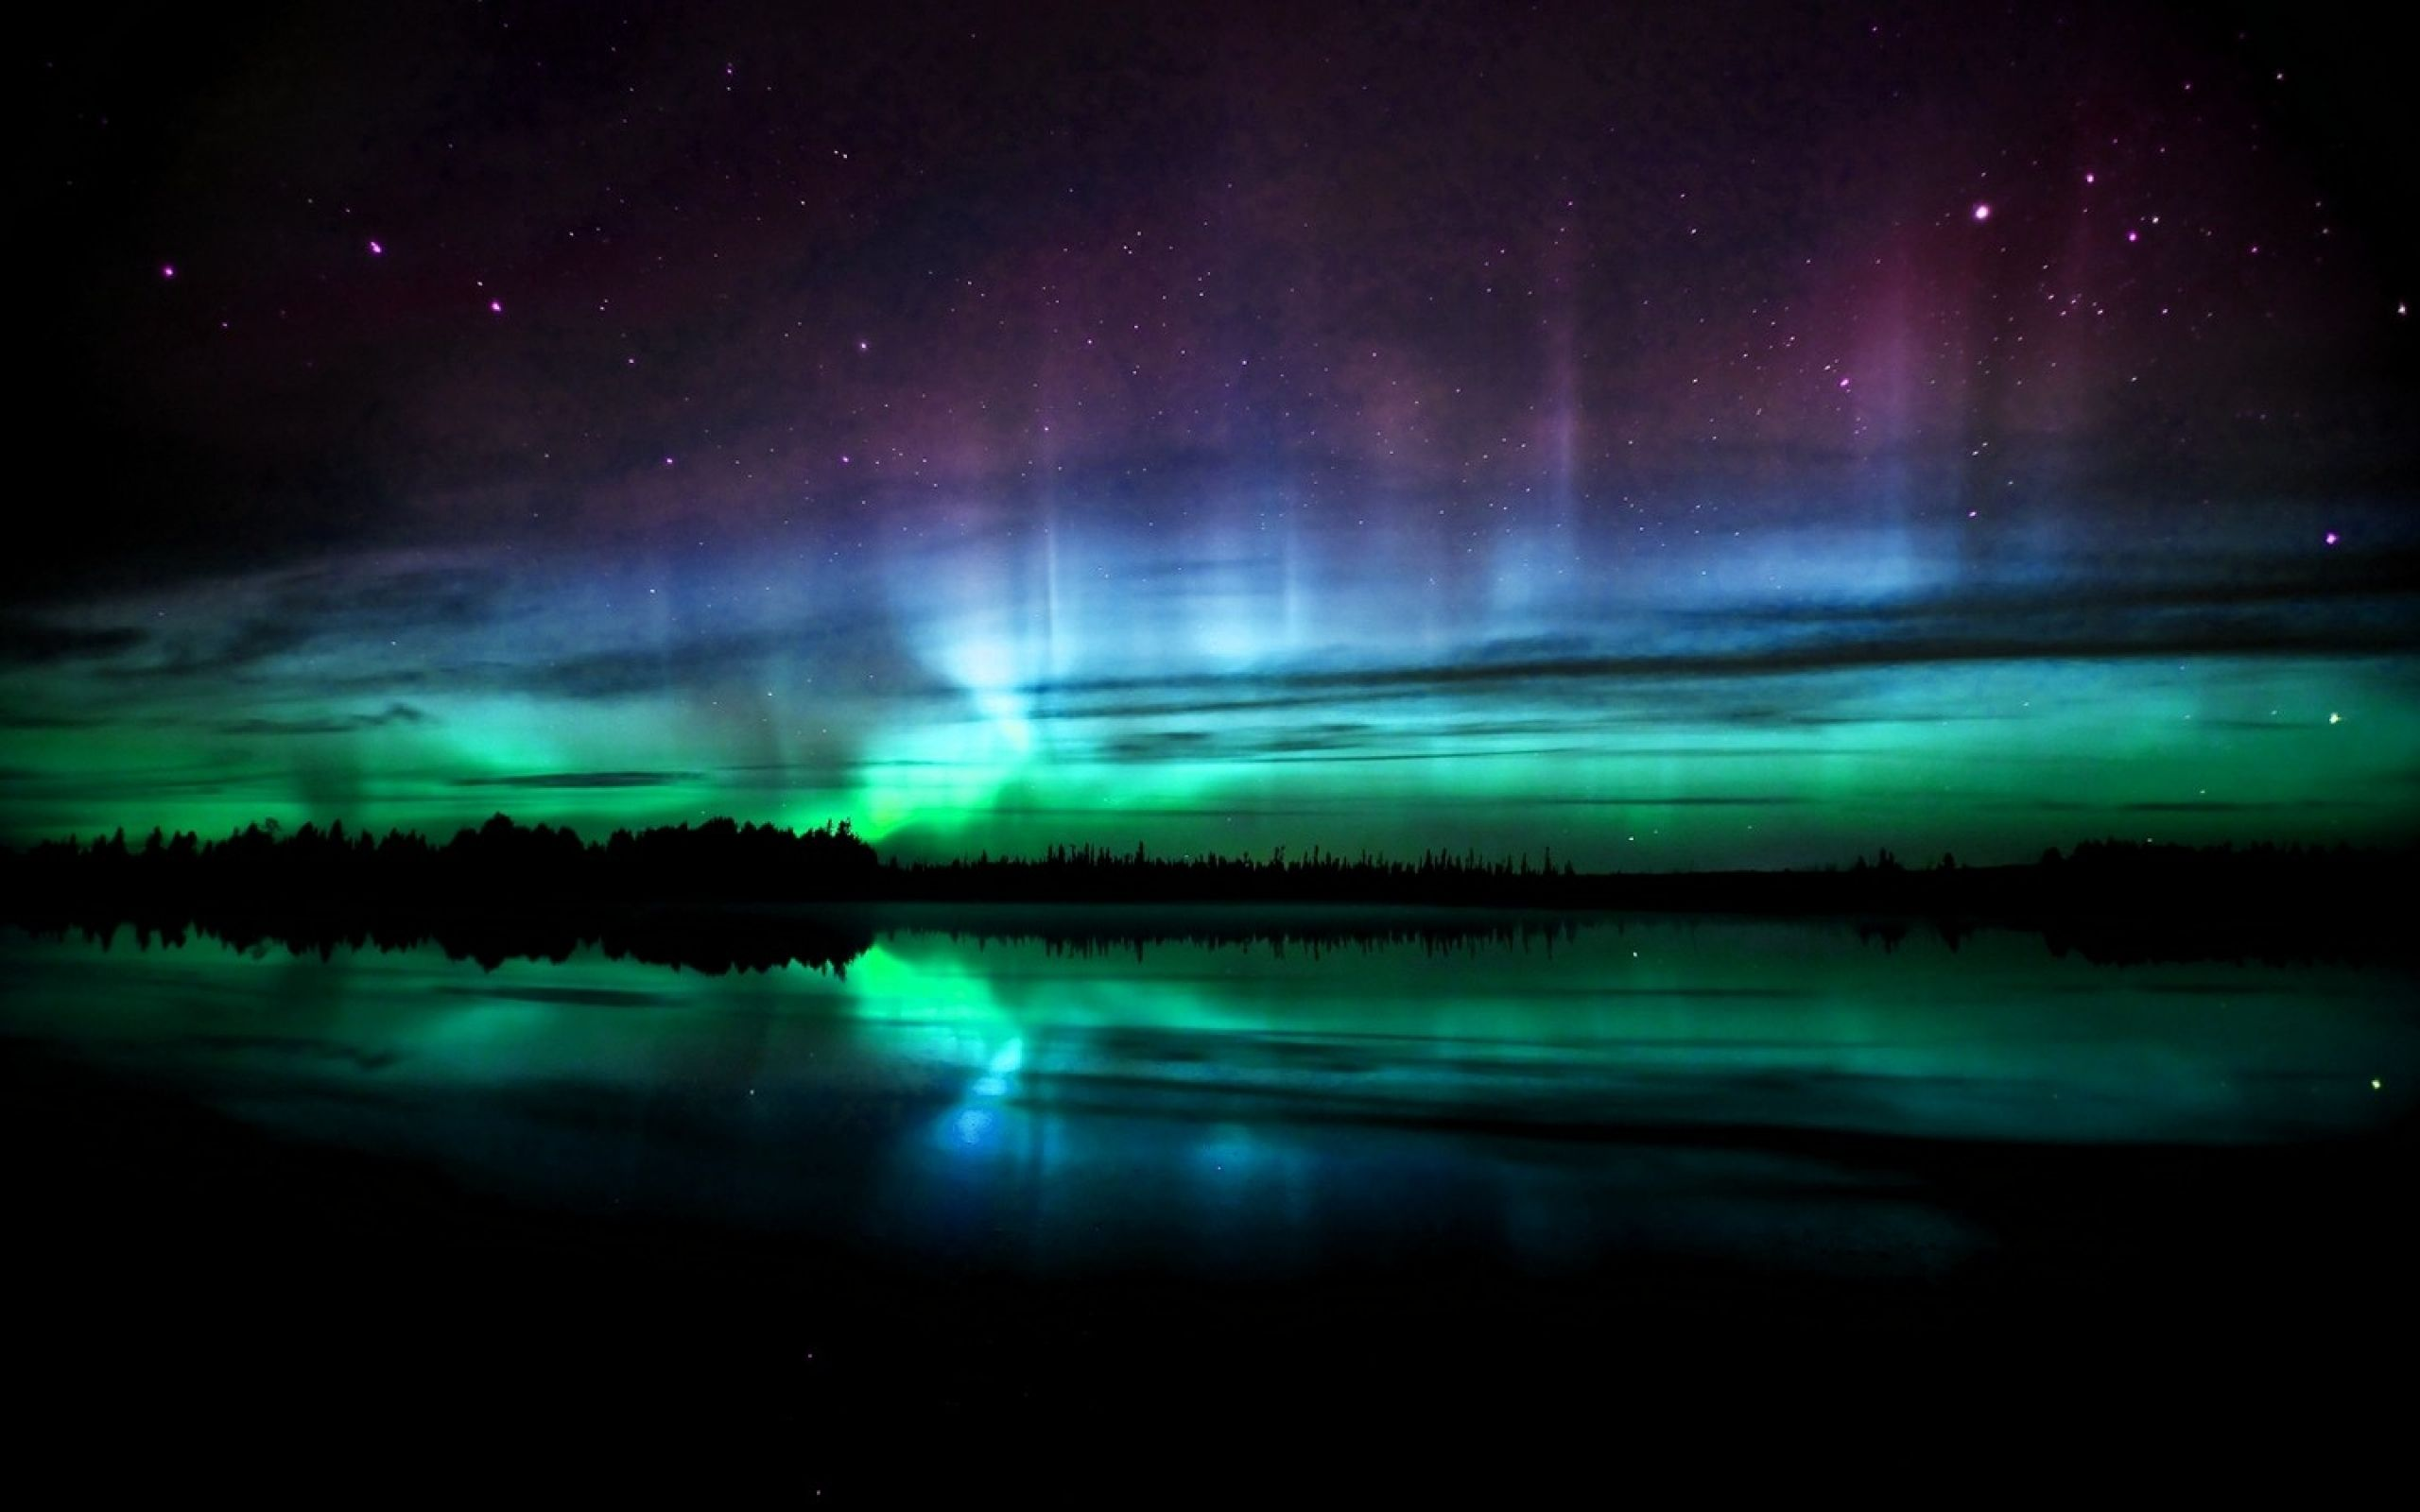 Northern Lights Wallpaper High Definition Wallpaper High Resolution Wallp Northern Lights Wallpaper Aurora Borealis Northern Lights Green Aurora Borealis